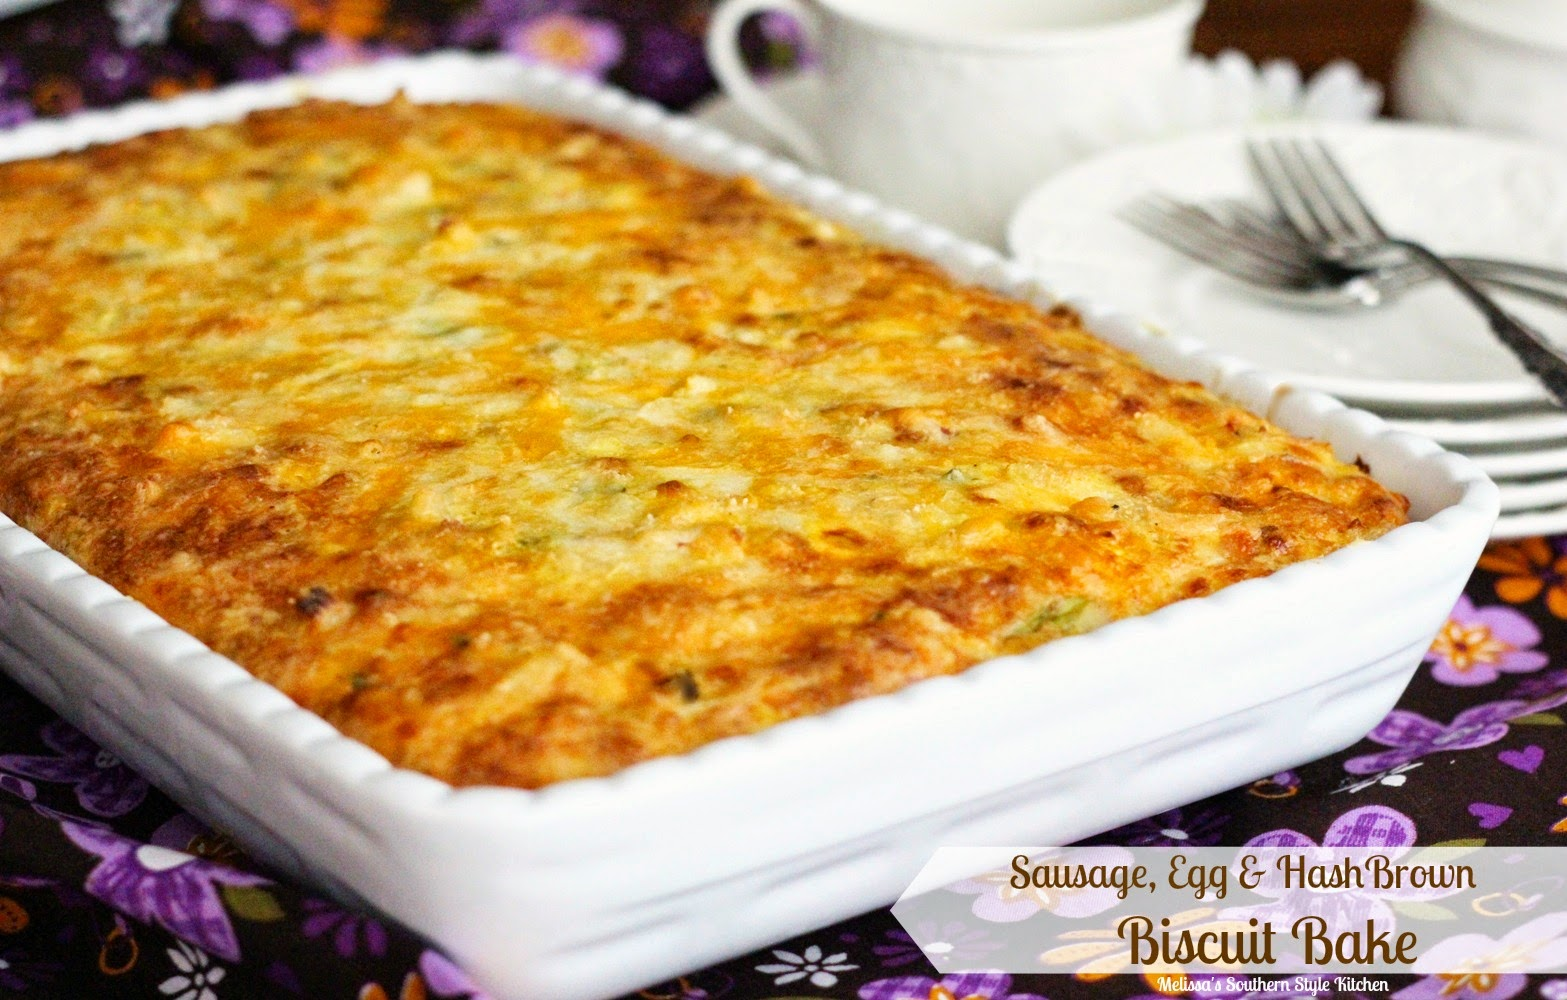 ... Southern Style Kitchen: Sausage, Egg and Hash Brown Biscuit Bake